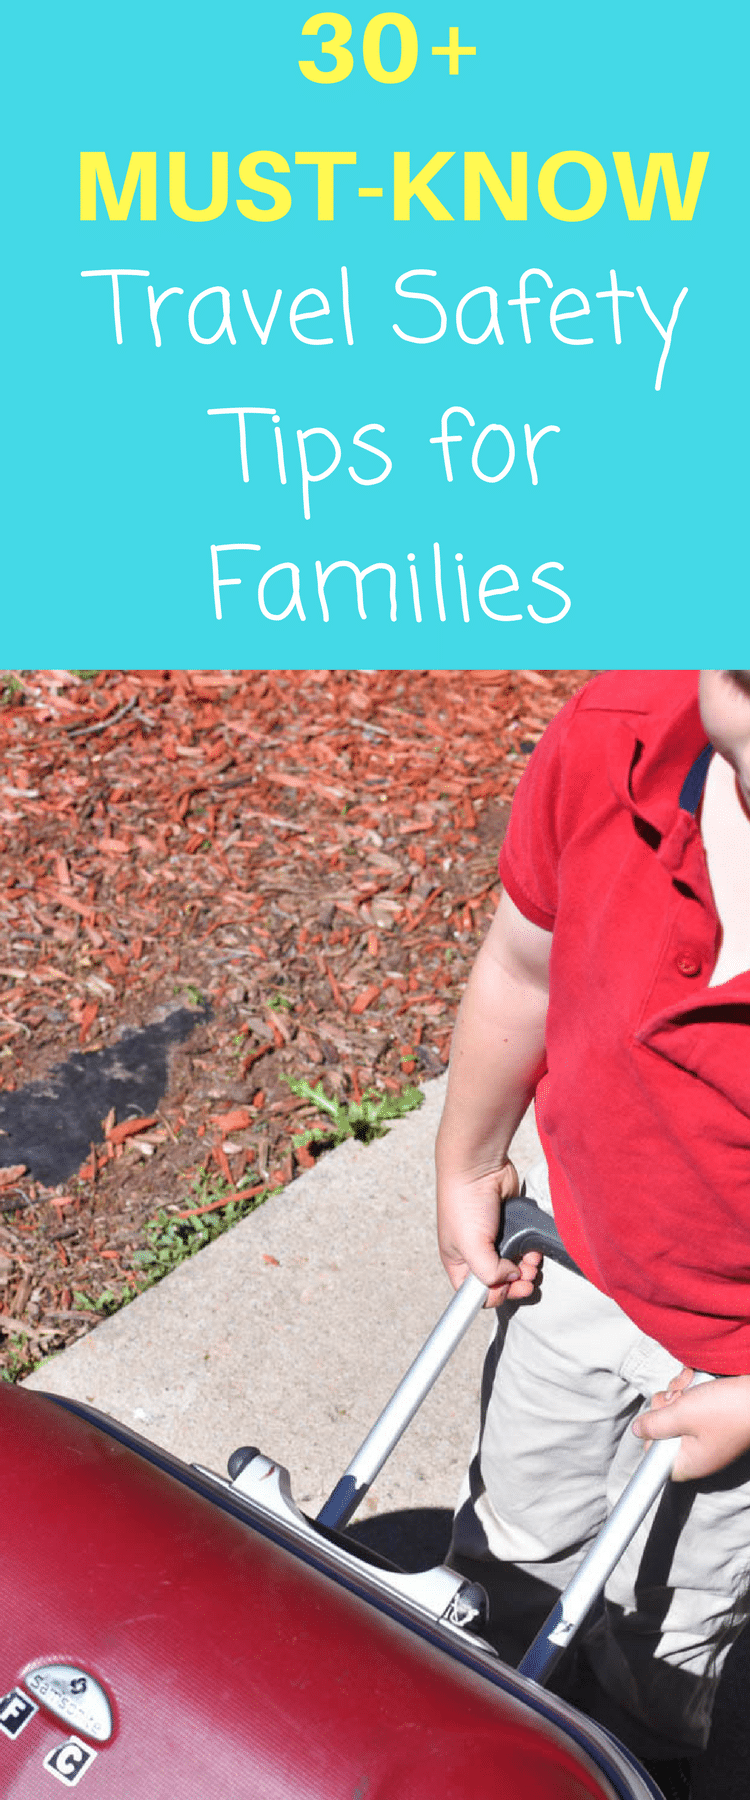 30+ Must-Know Travel Safety Tips for Families / Travel Tips for Families / Family Travel Tips / Travel Tips / Safety / Children / Traveling with Children